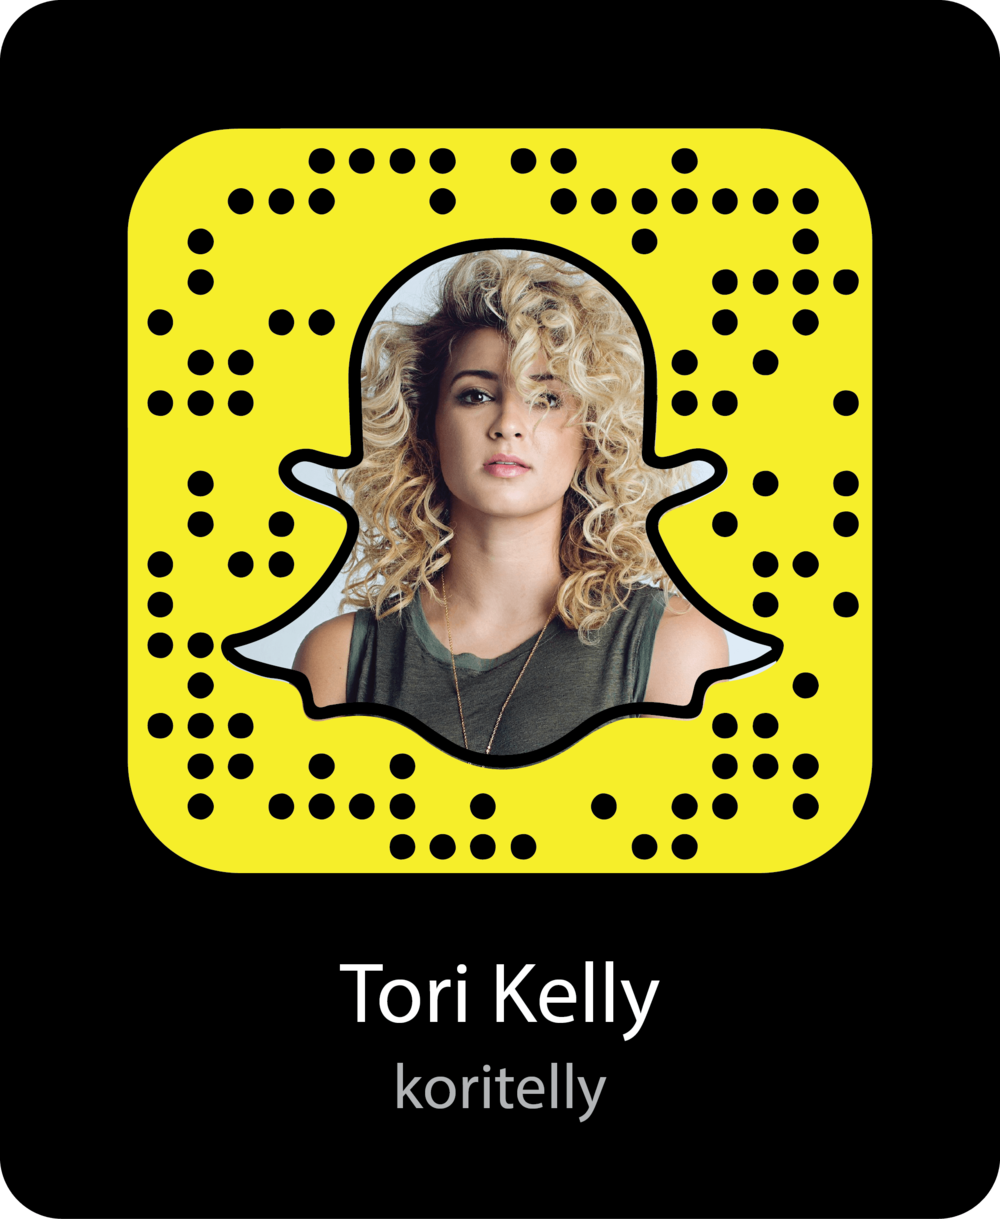 tori-kelly-celebrity-snapchat-snapcode